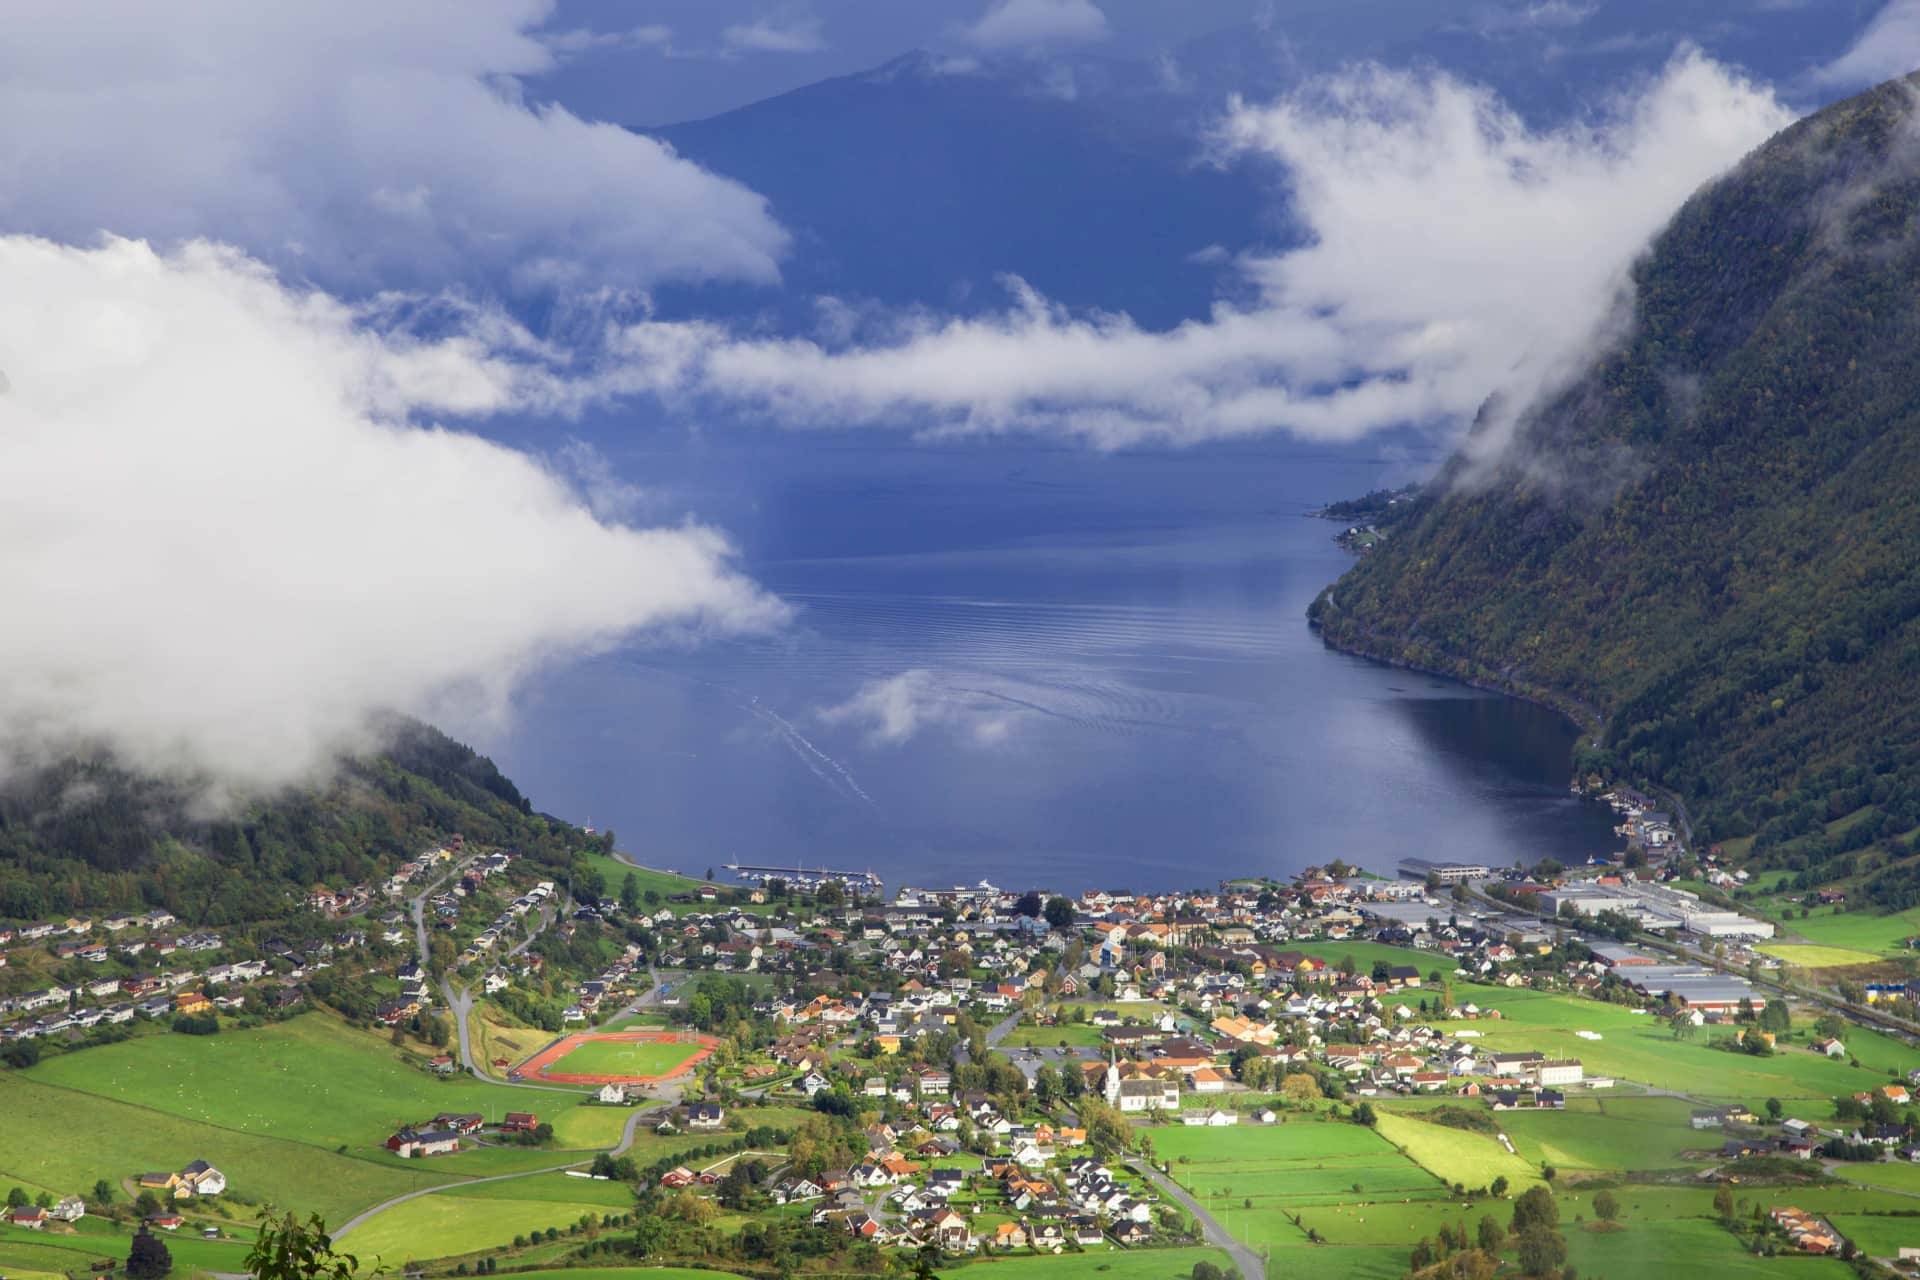 A view of the small village of Vik seen from a view point above the village where you also see the Sognefjord  bordering Vik.